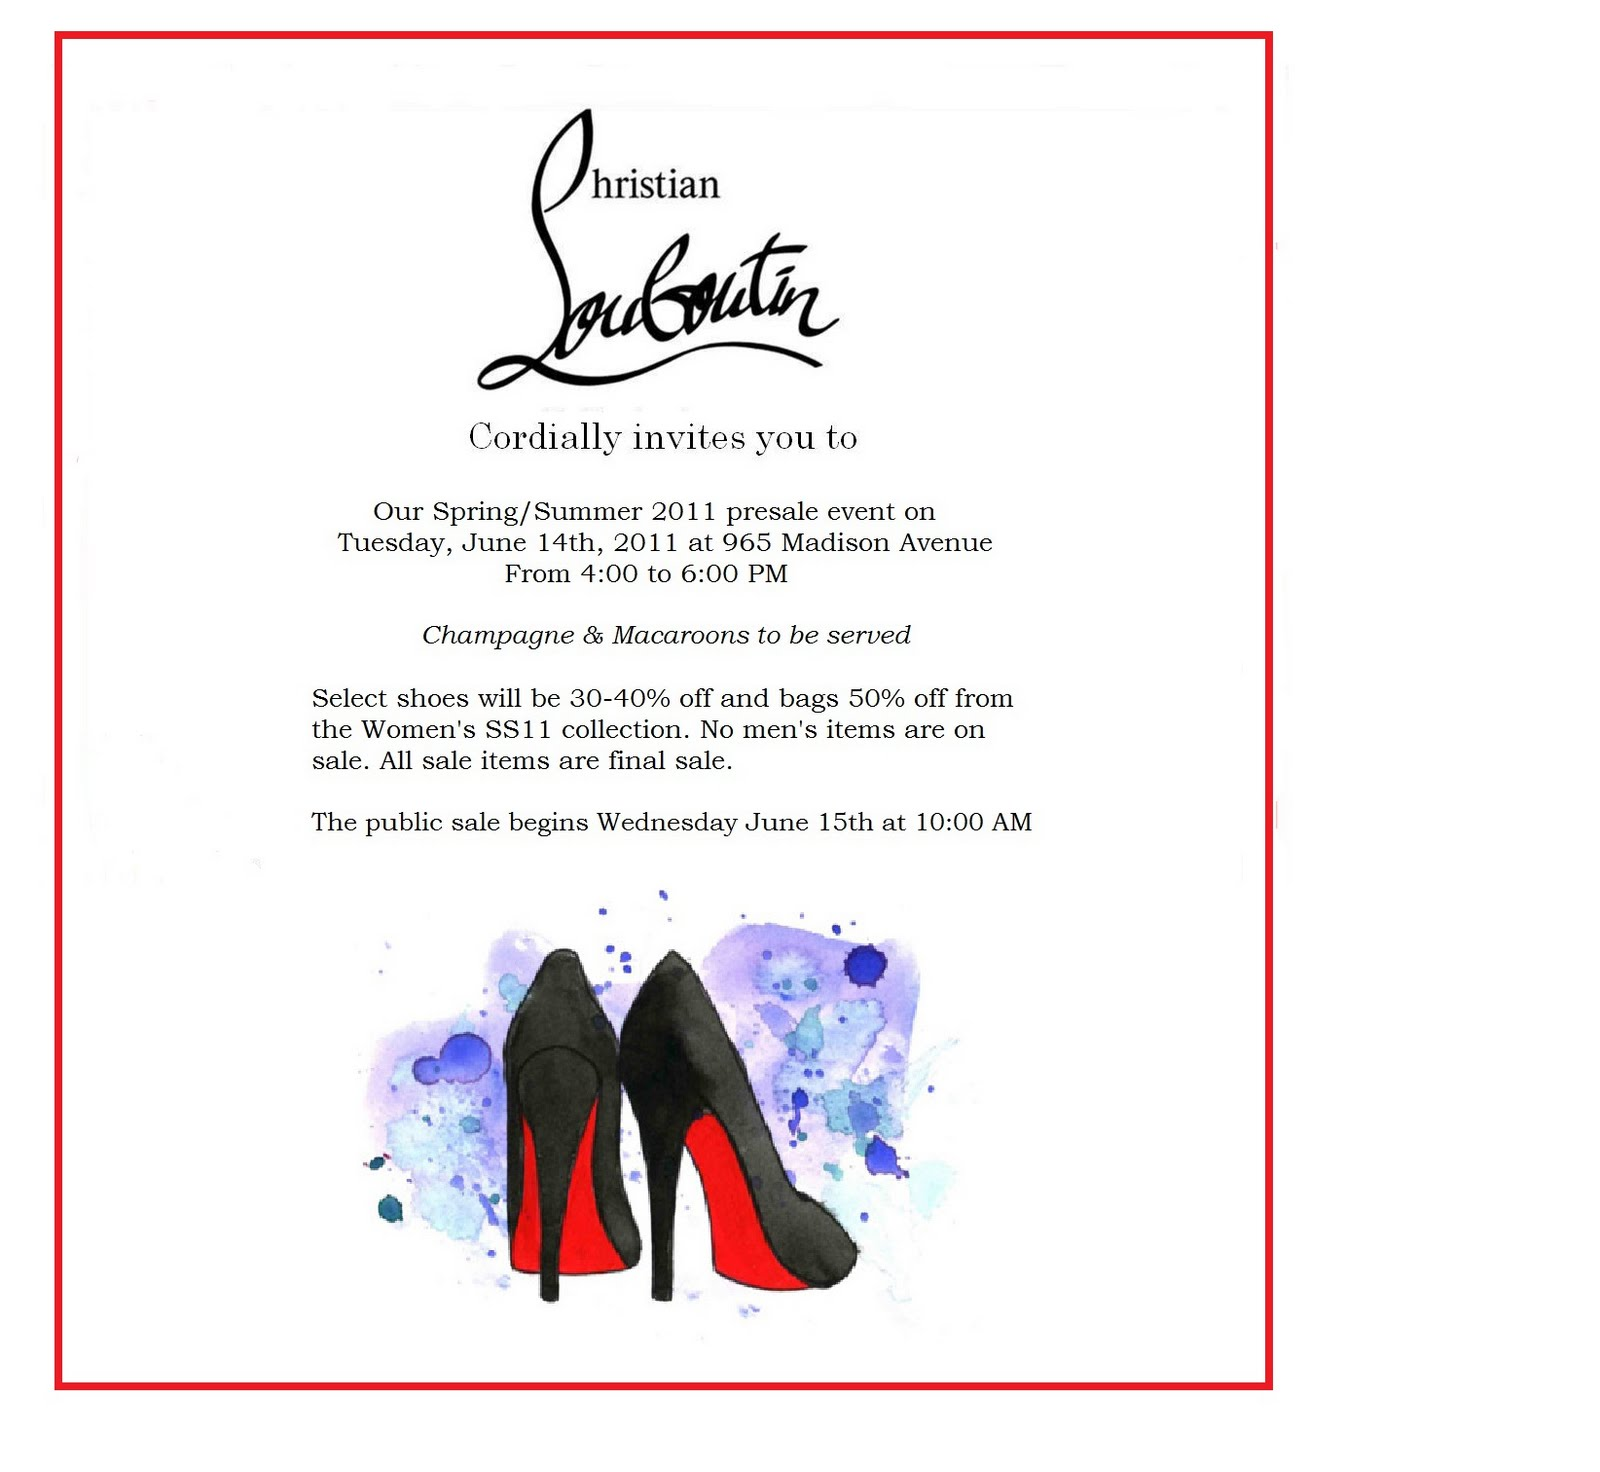 christian louboutin sample sale invitation 2015